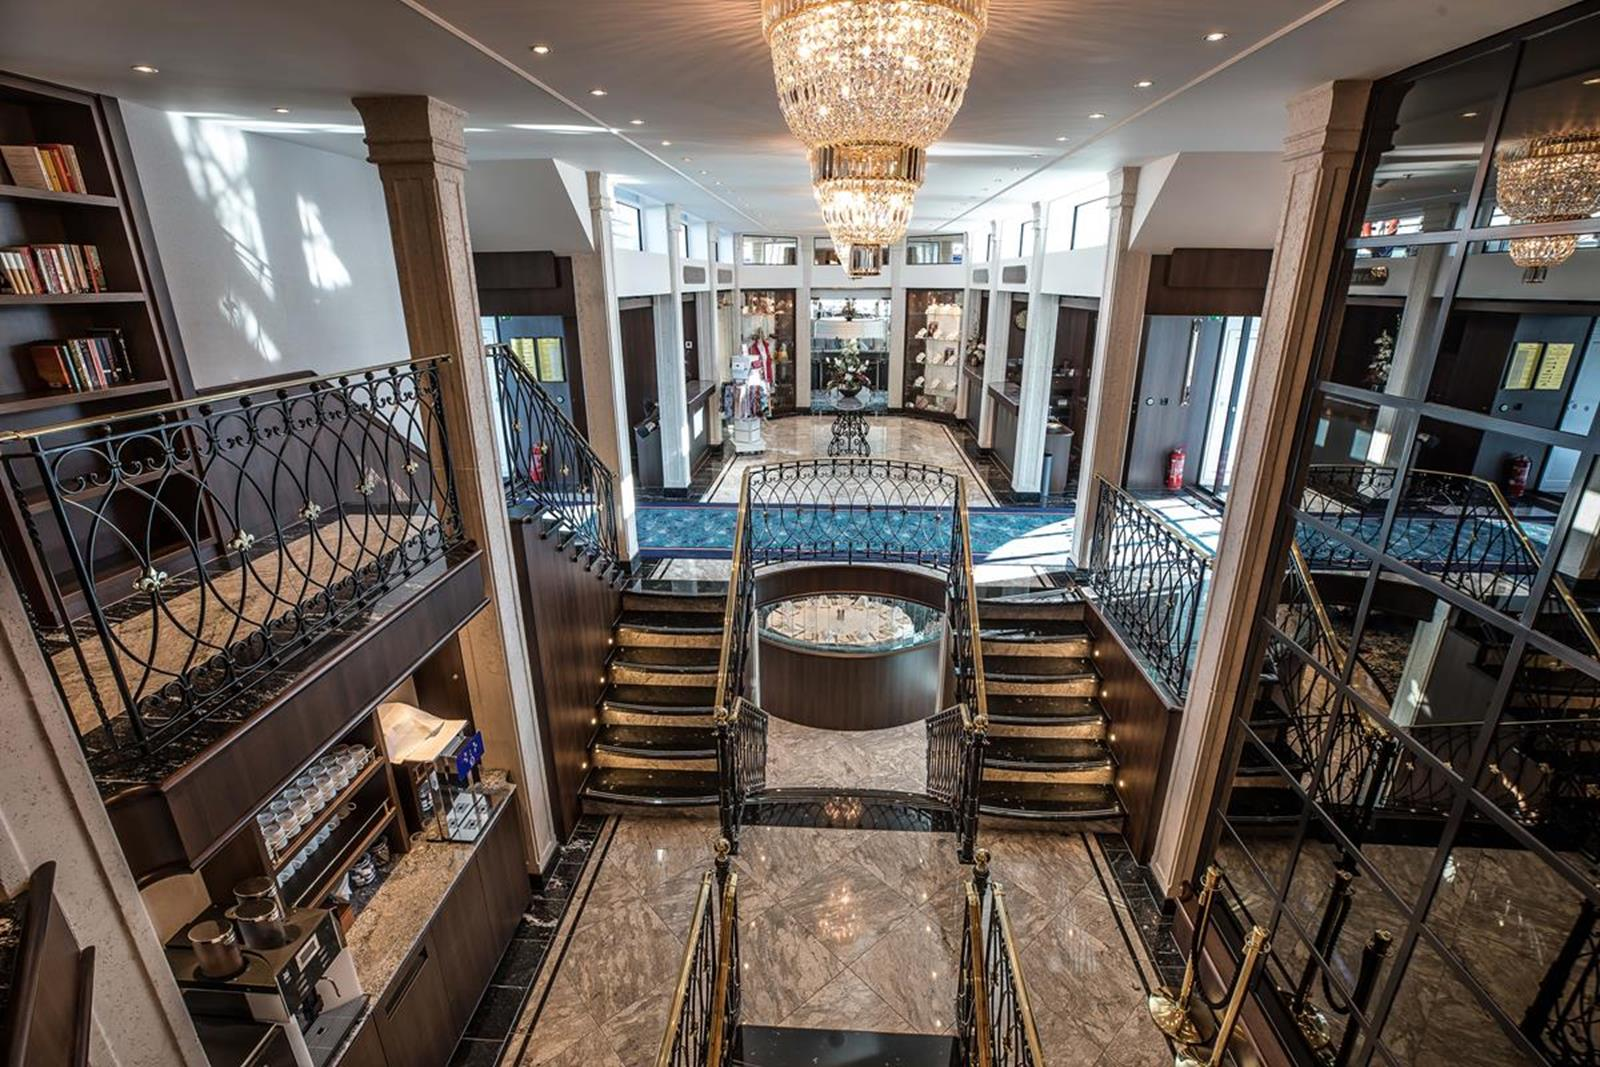 MS George Eliot lobby 1 - Courtesy of Riviera River Cruises